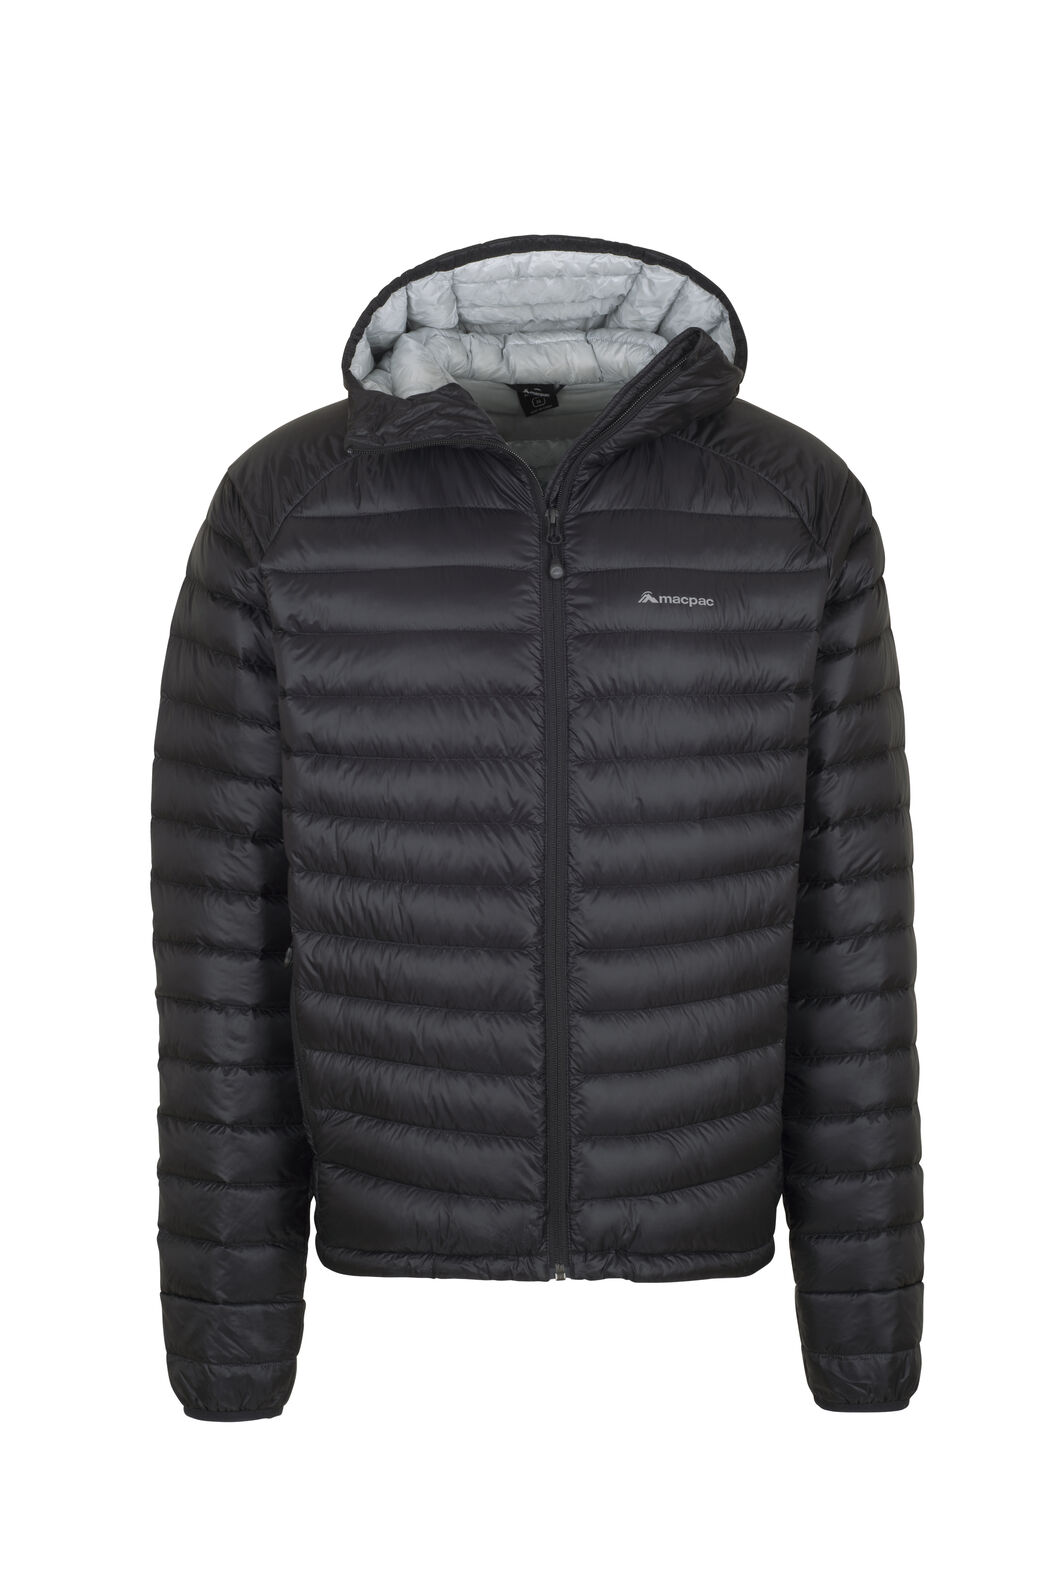 Macpac Icefall HyperDRY™ Hooded Jacket — Men's, Black, hi-res